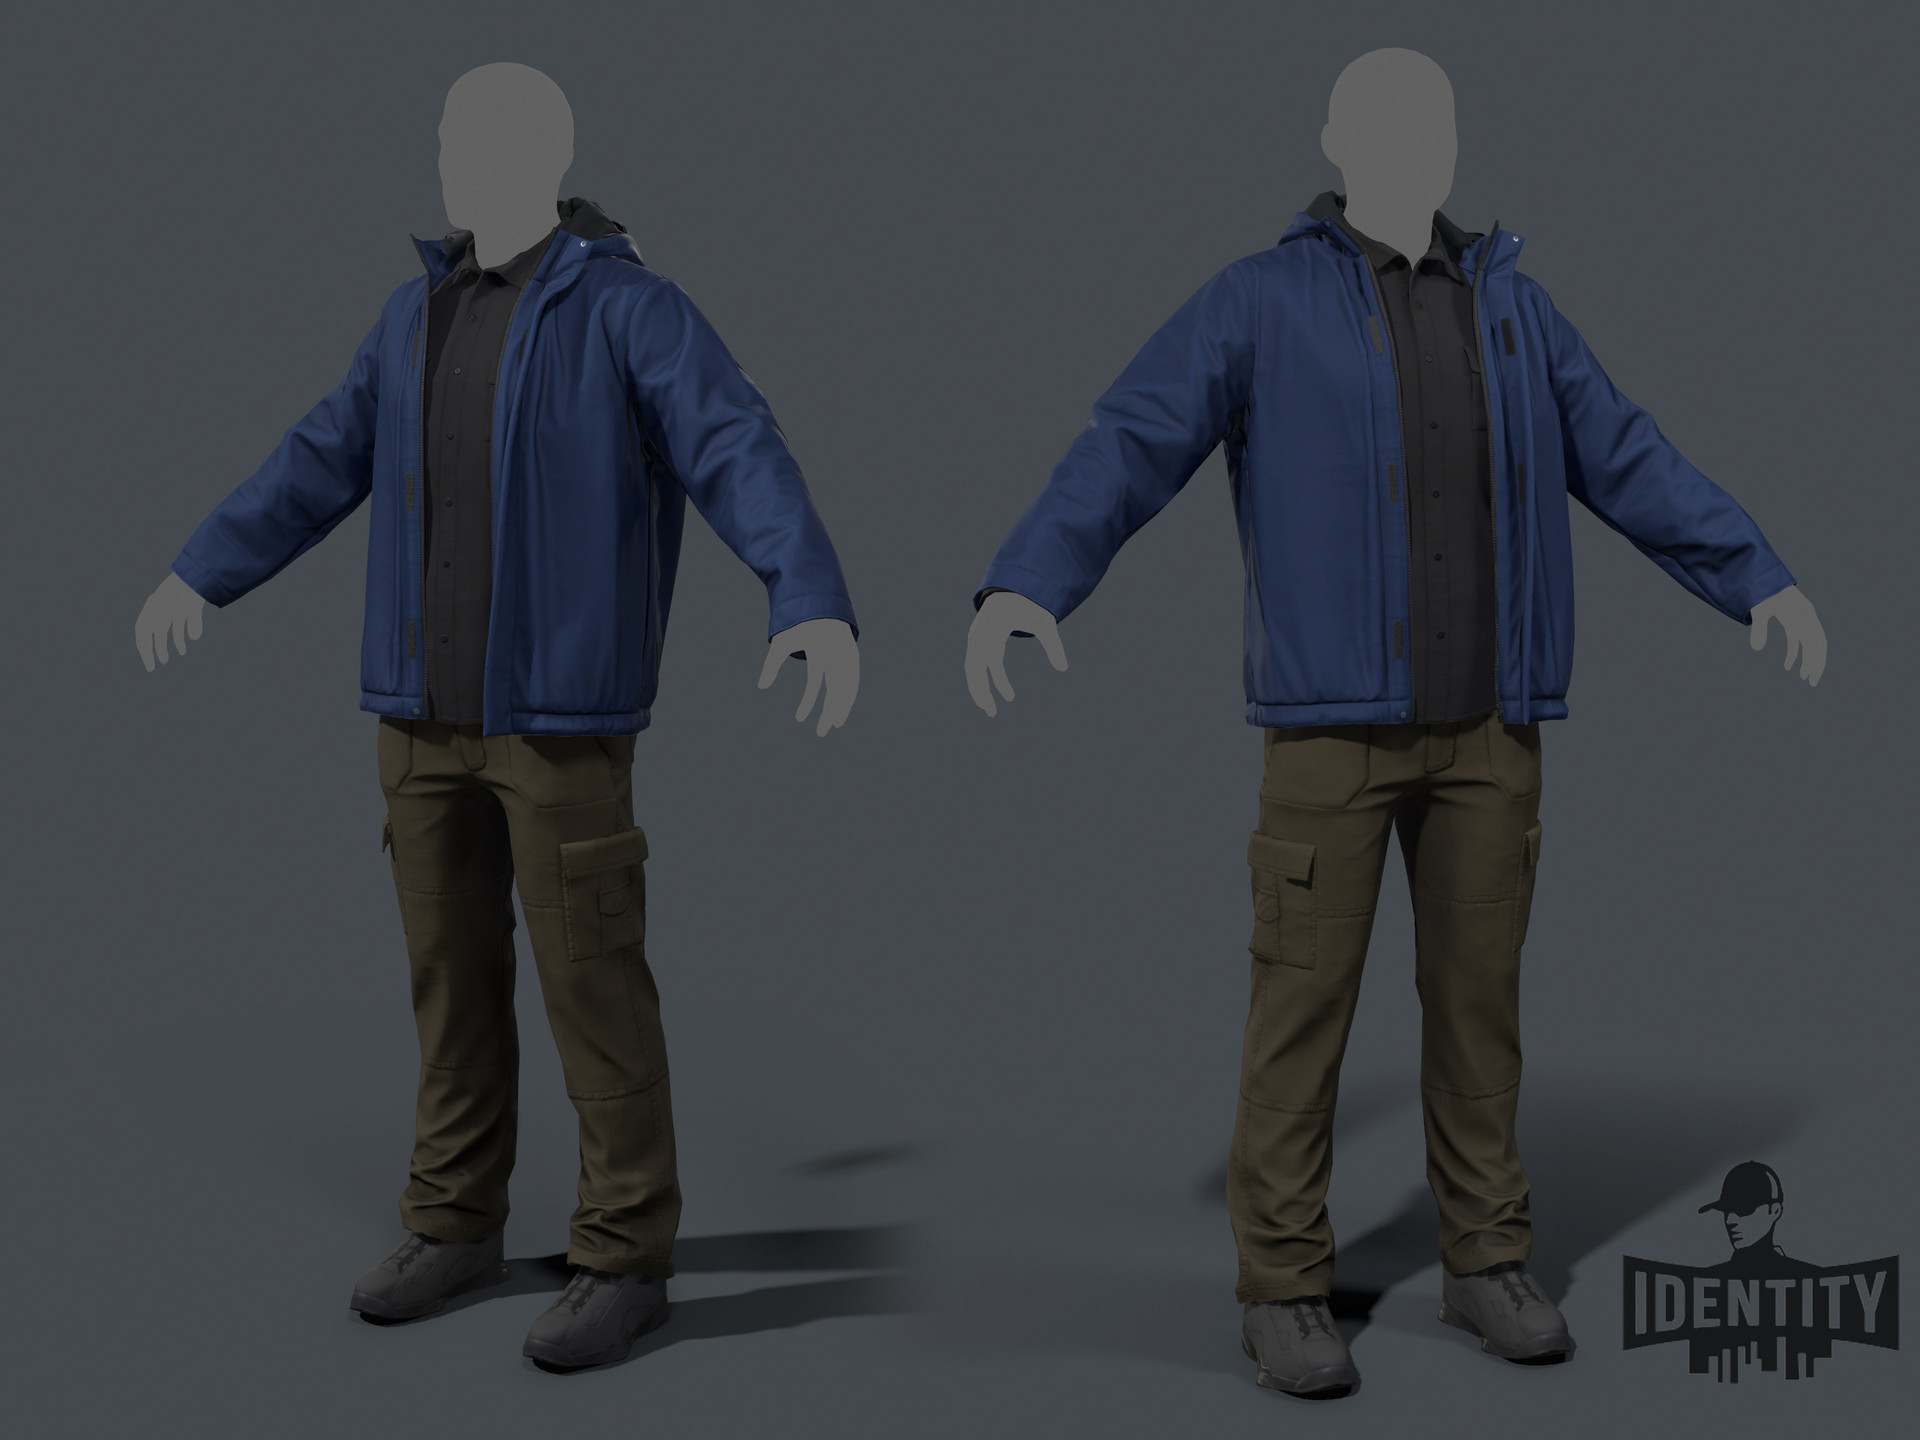 3D Character Artist Looking For Work